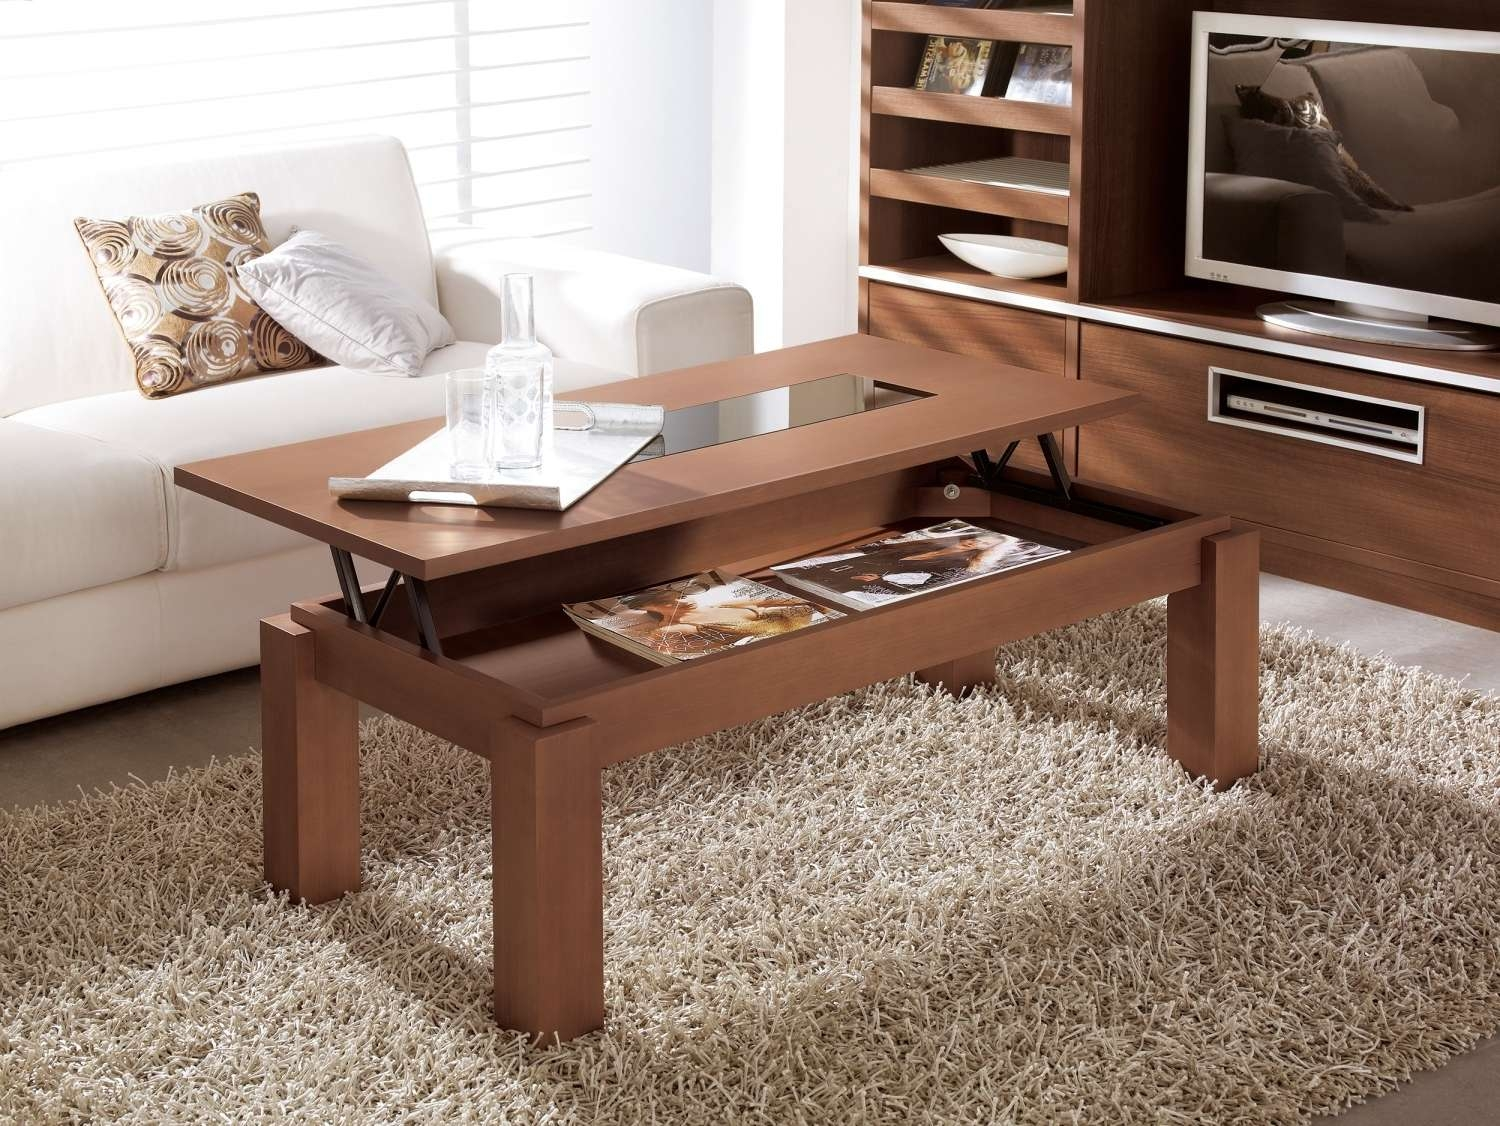 Charming Modern Lift Up Coffee Table With Hard Wood Materials Regarding Newest Coffee Tables Top Lifts Up (View 3 of 20)